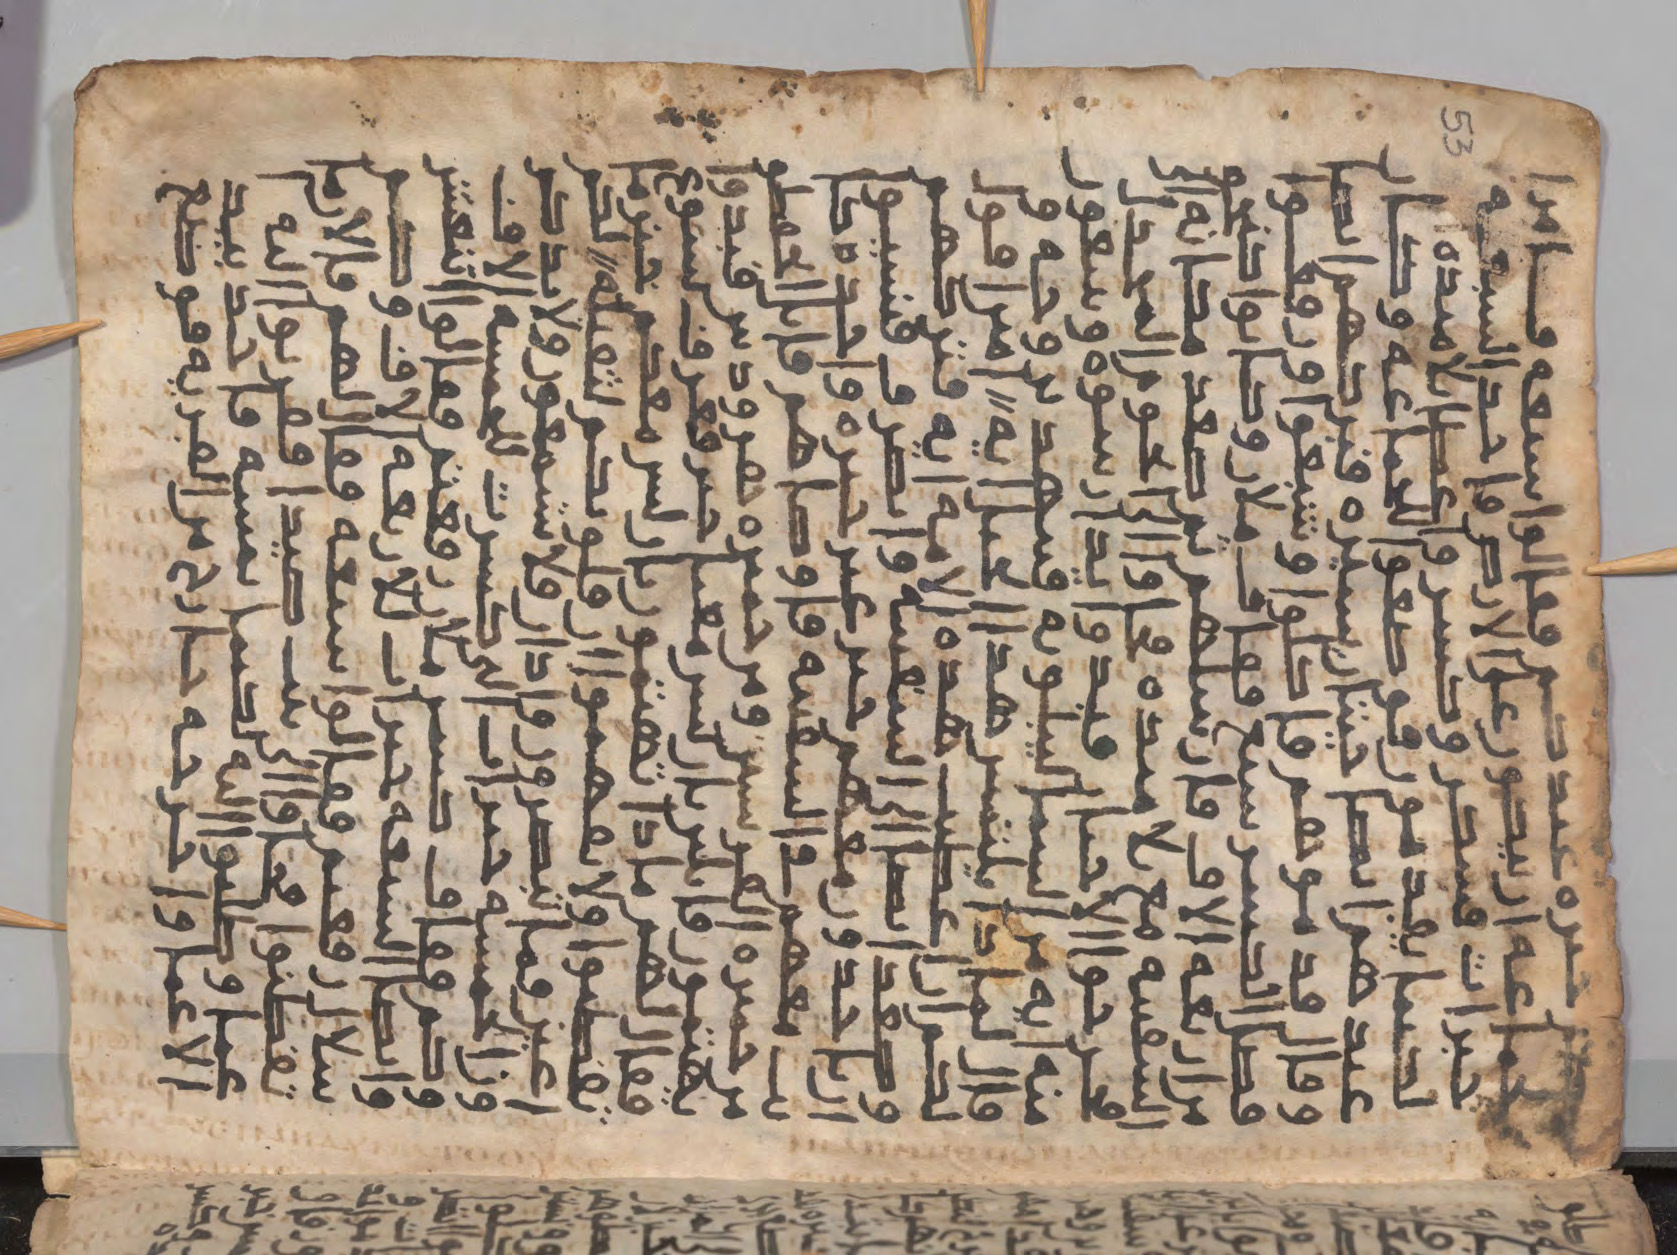 Overtext: Gospels in Arabic translation, late eighth century. The oldest surviving copy of the Gospels in Arabic translation.